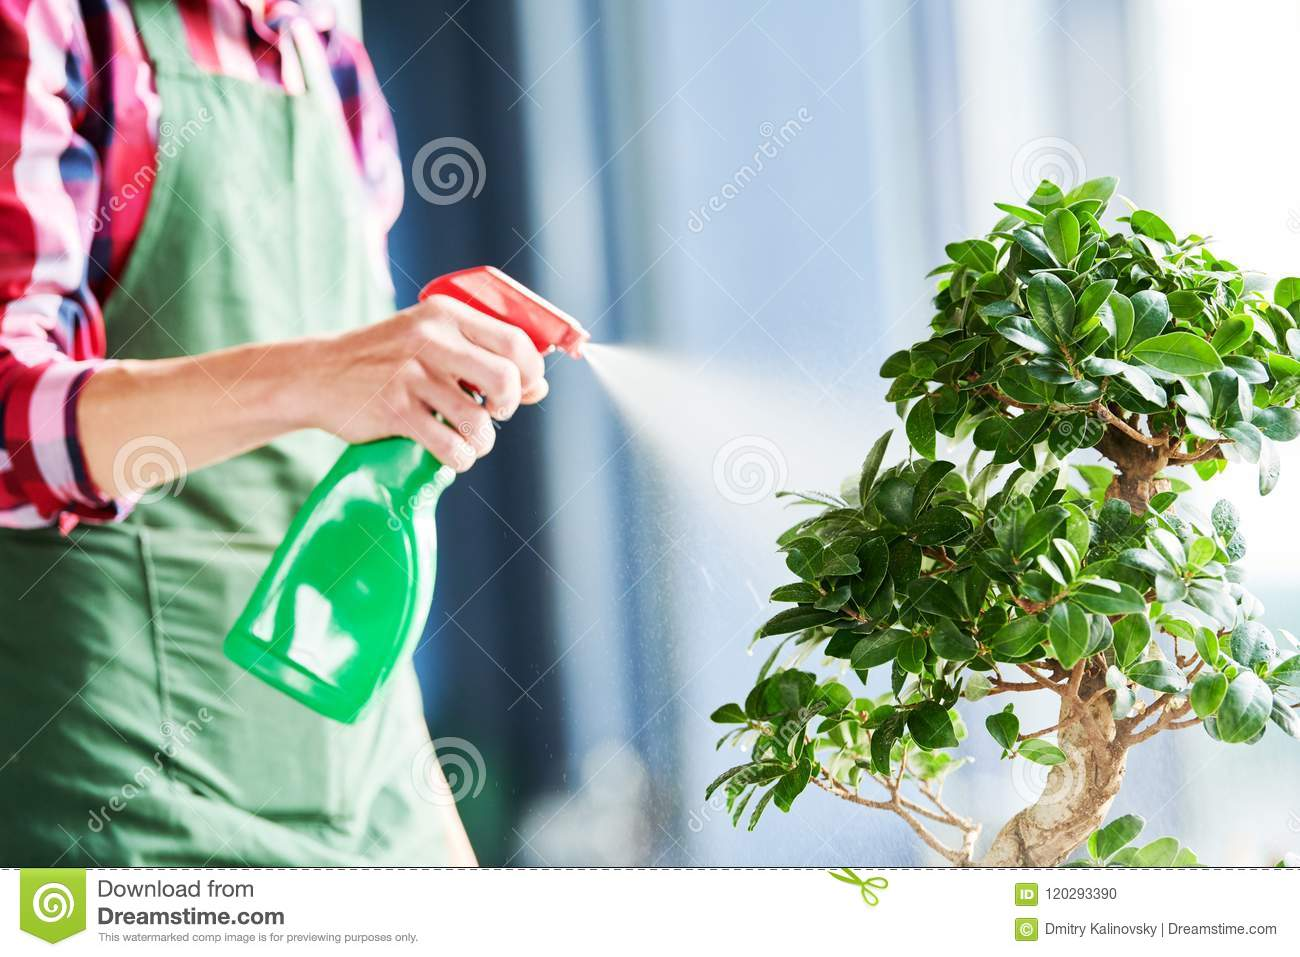 Bonsai care and tending houseplant growth. Watering small tree.